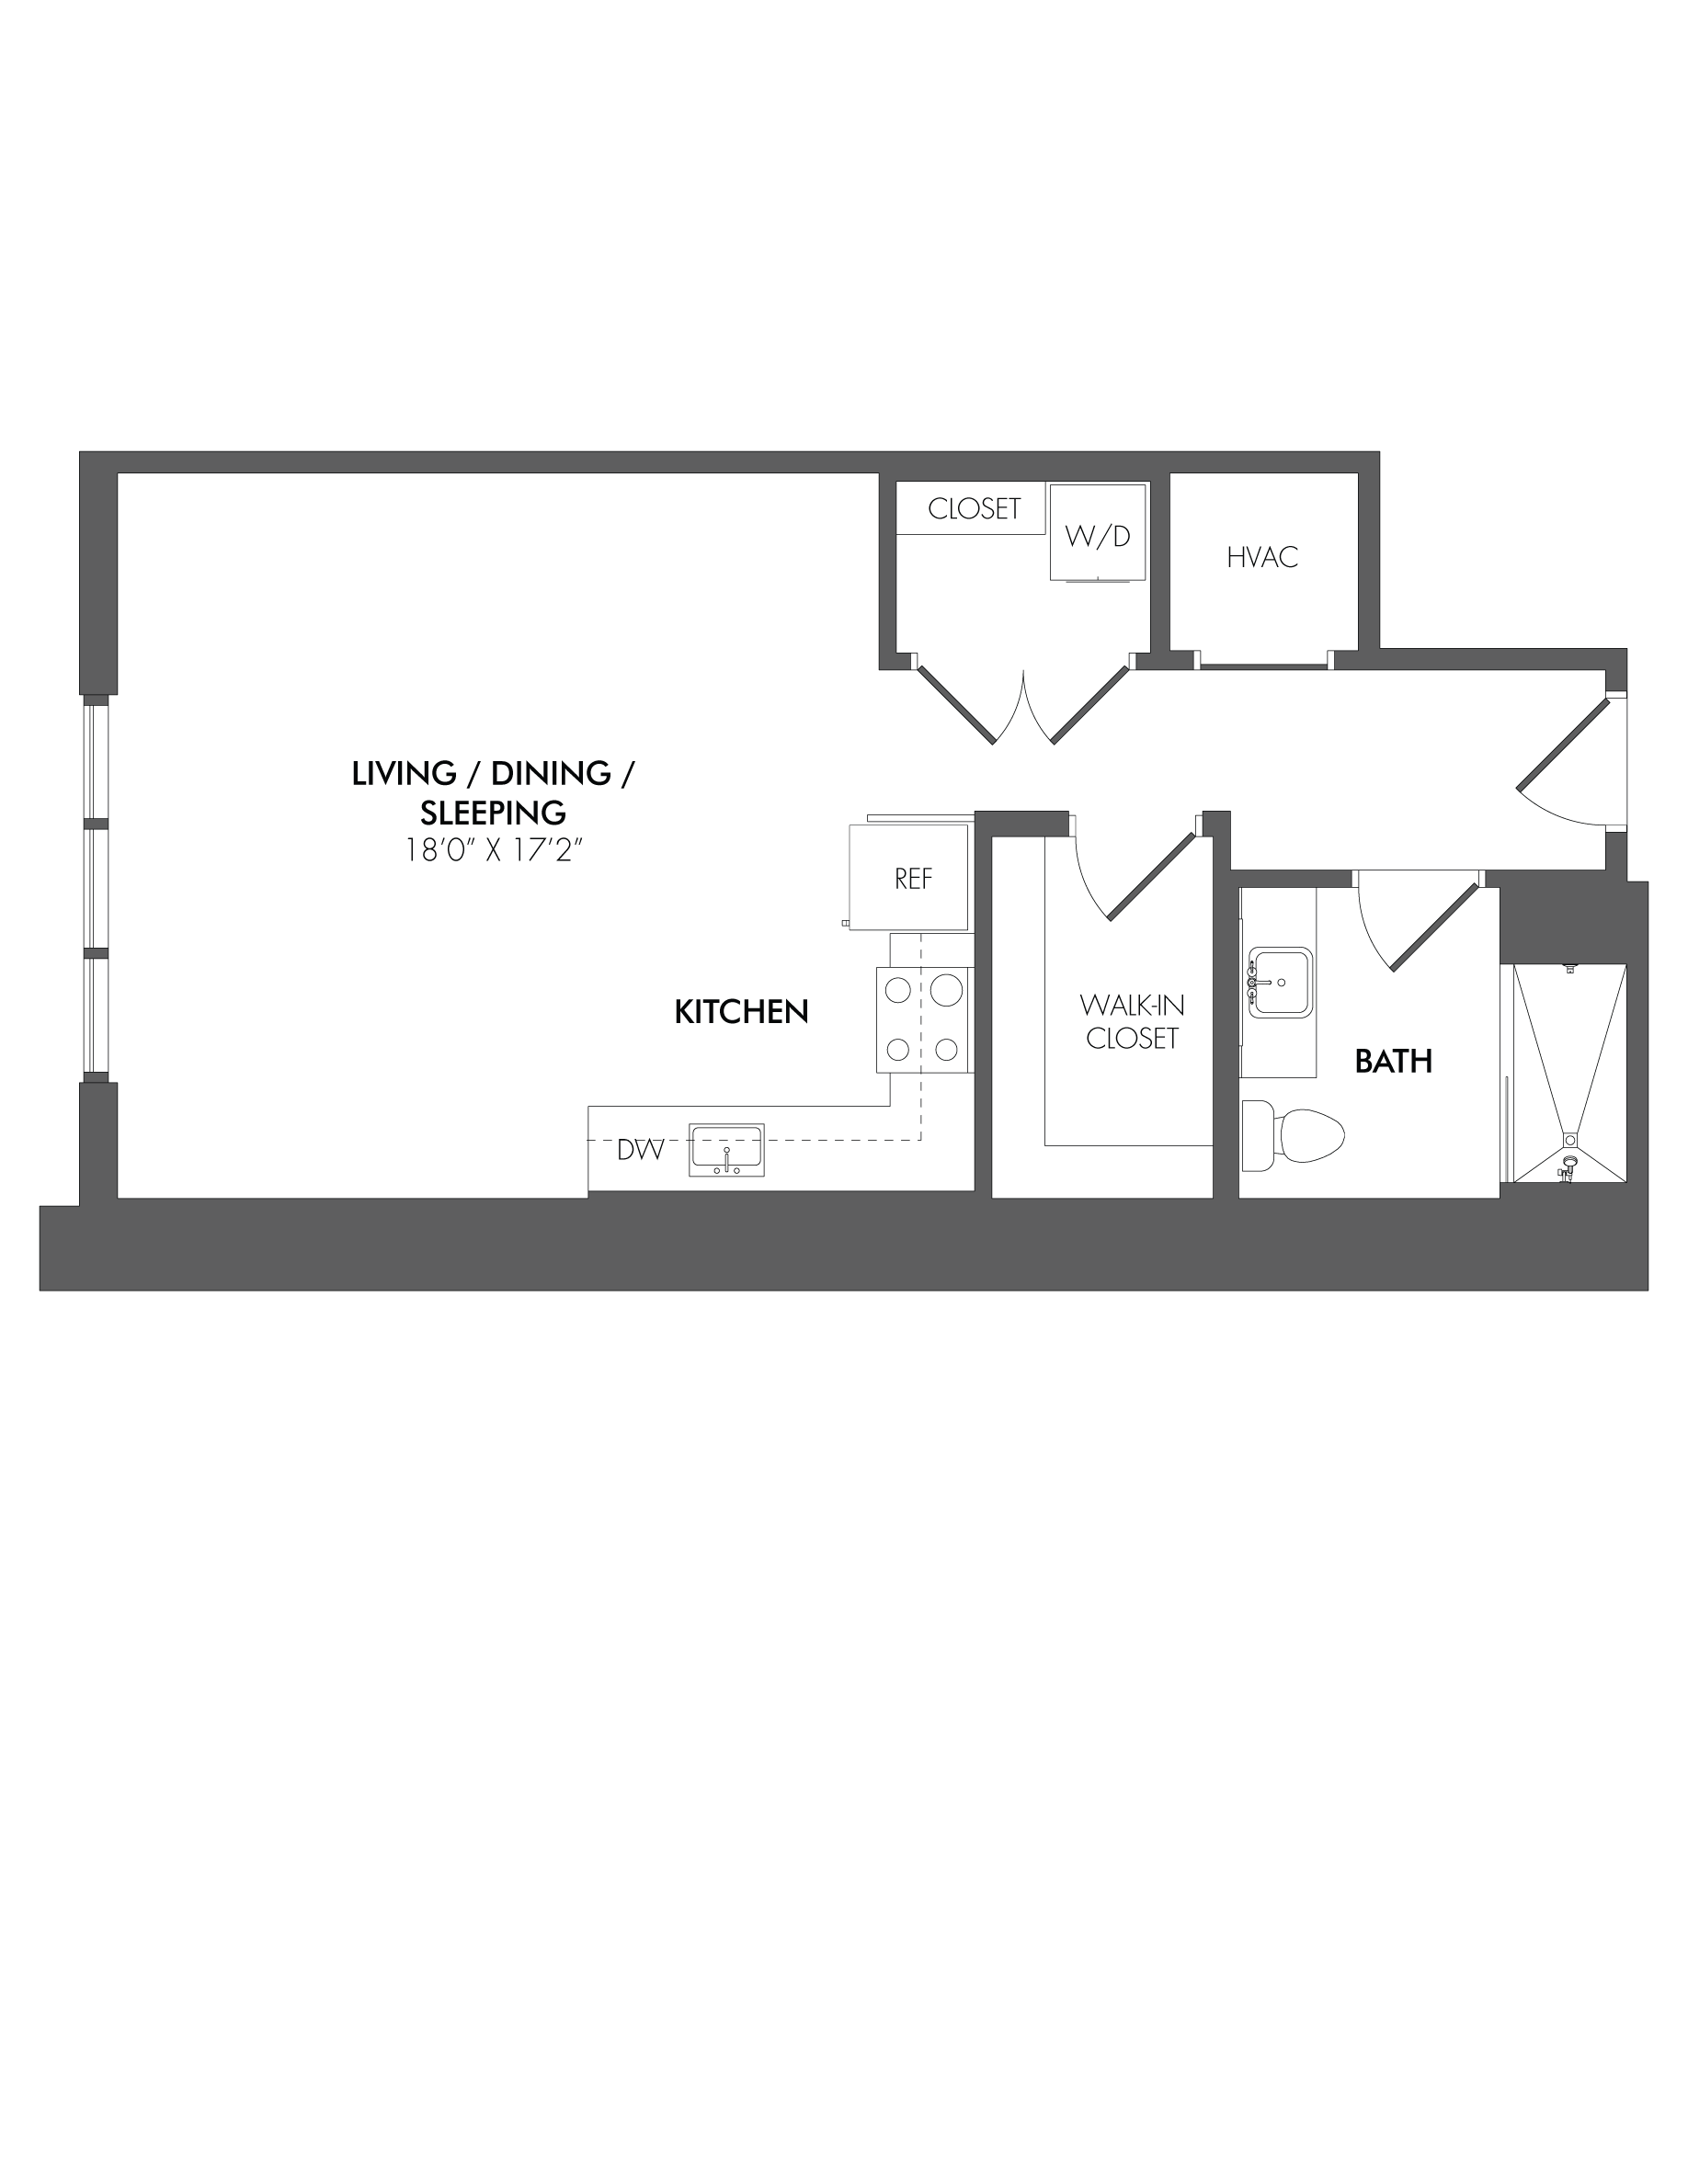 Apartment 2210 floorplan